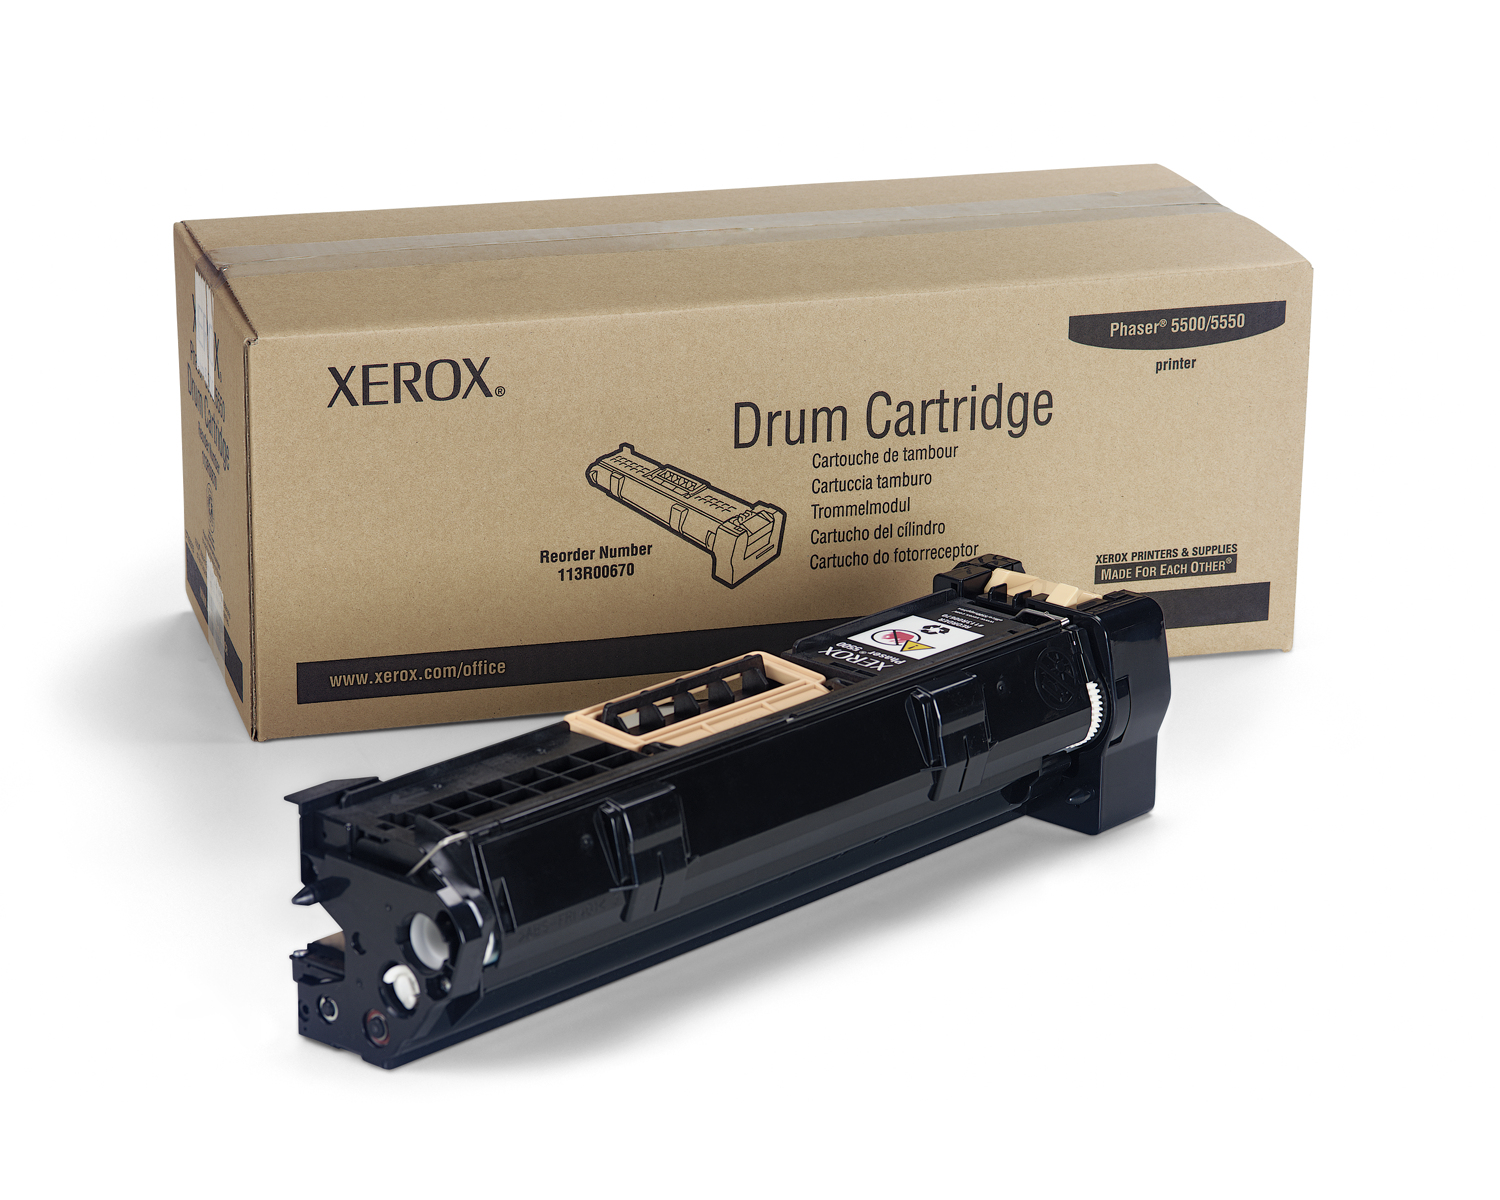 Xerox Phaser 5500/5550 drumcartridge